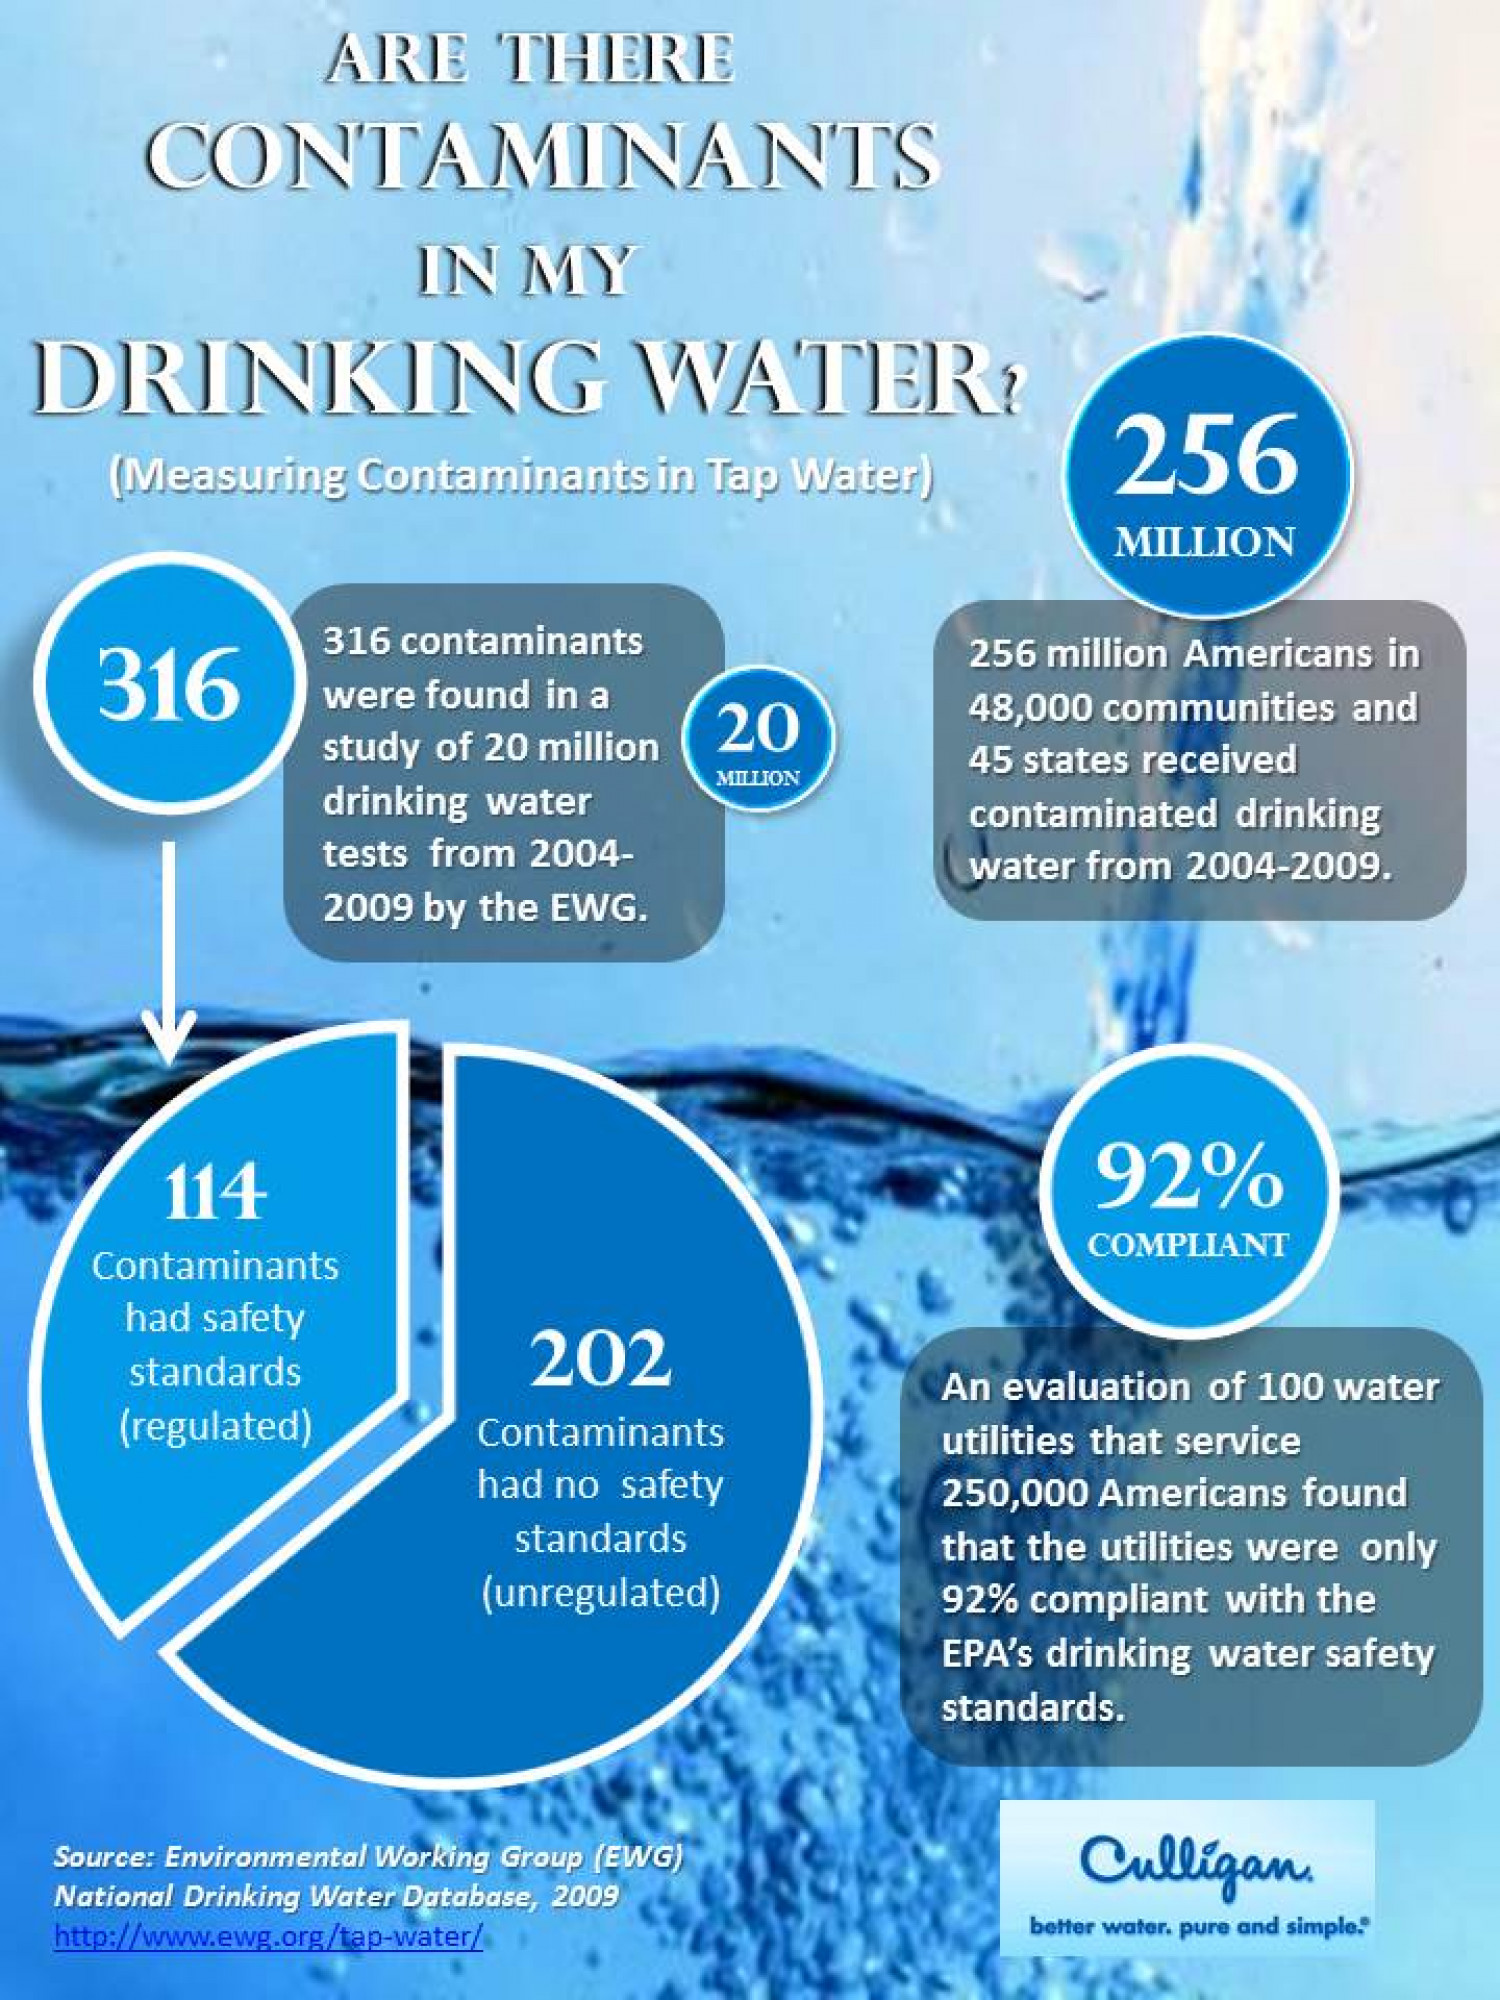 Are there contaminants in my drinking water? | Visual.ly